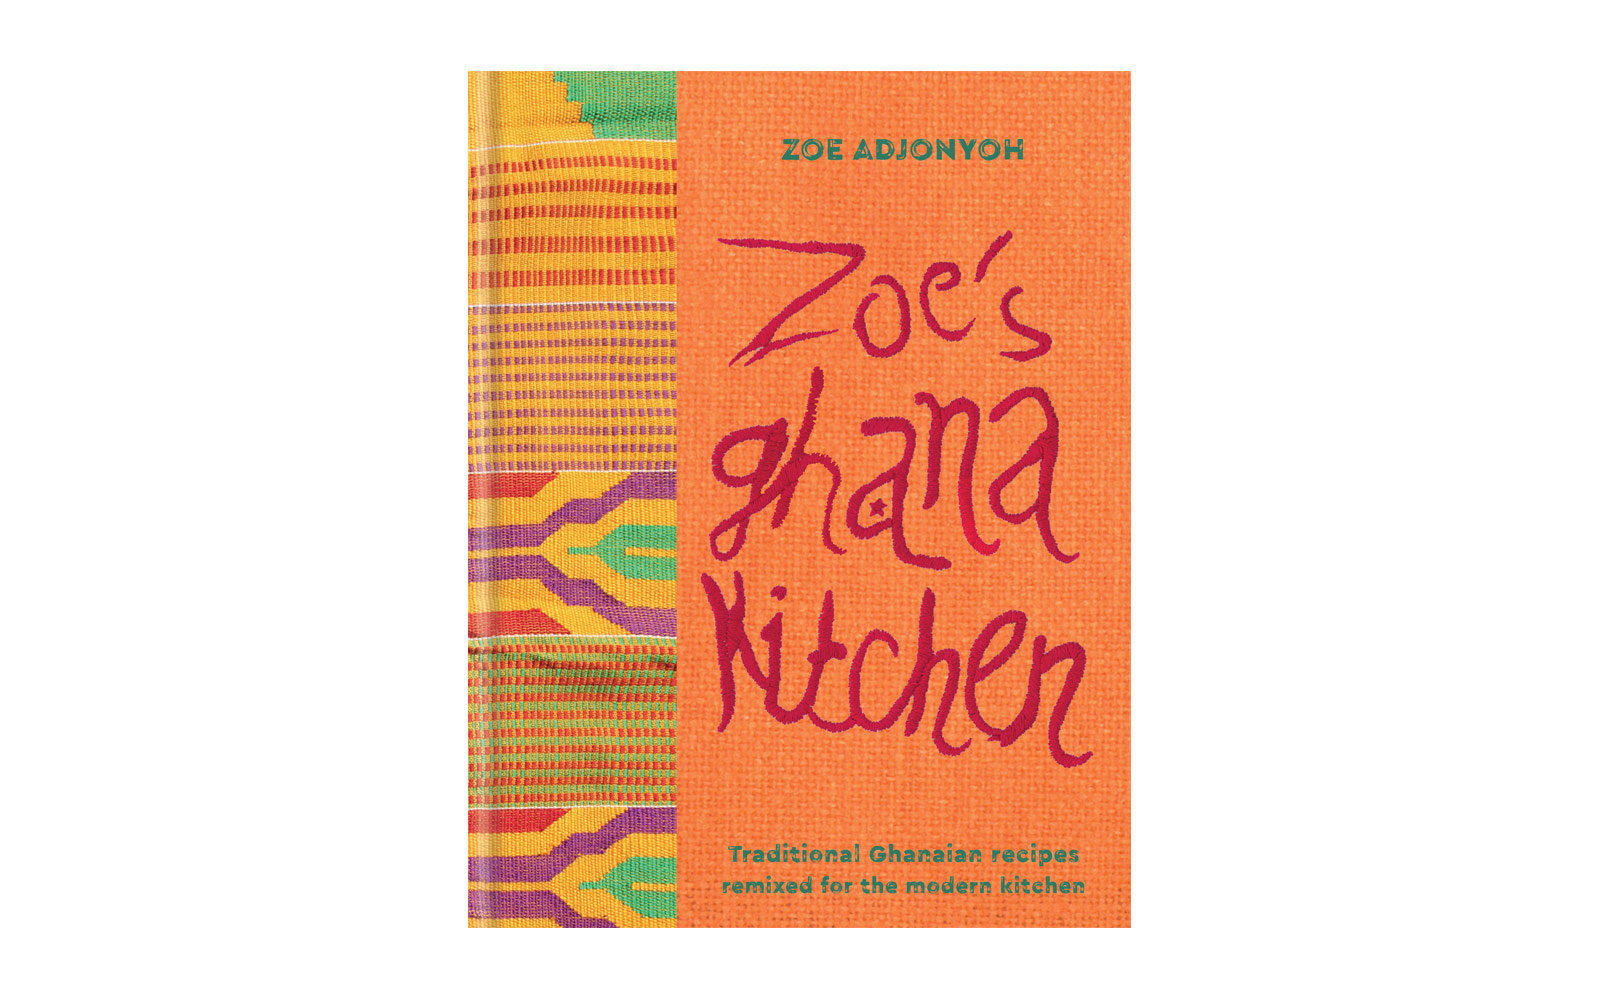 Zoe's Ghana Kitchen, by Zoe Adjonyoh